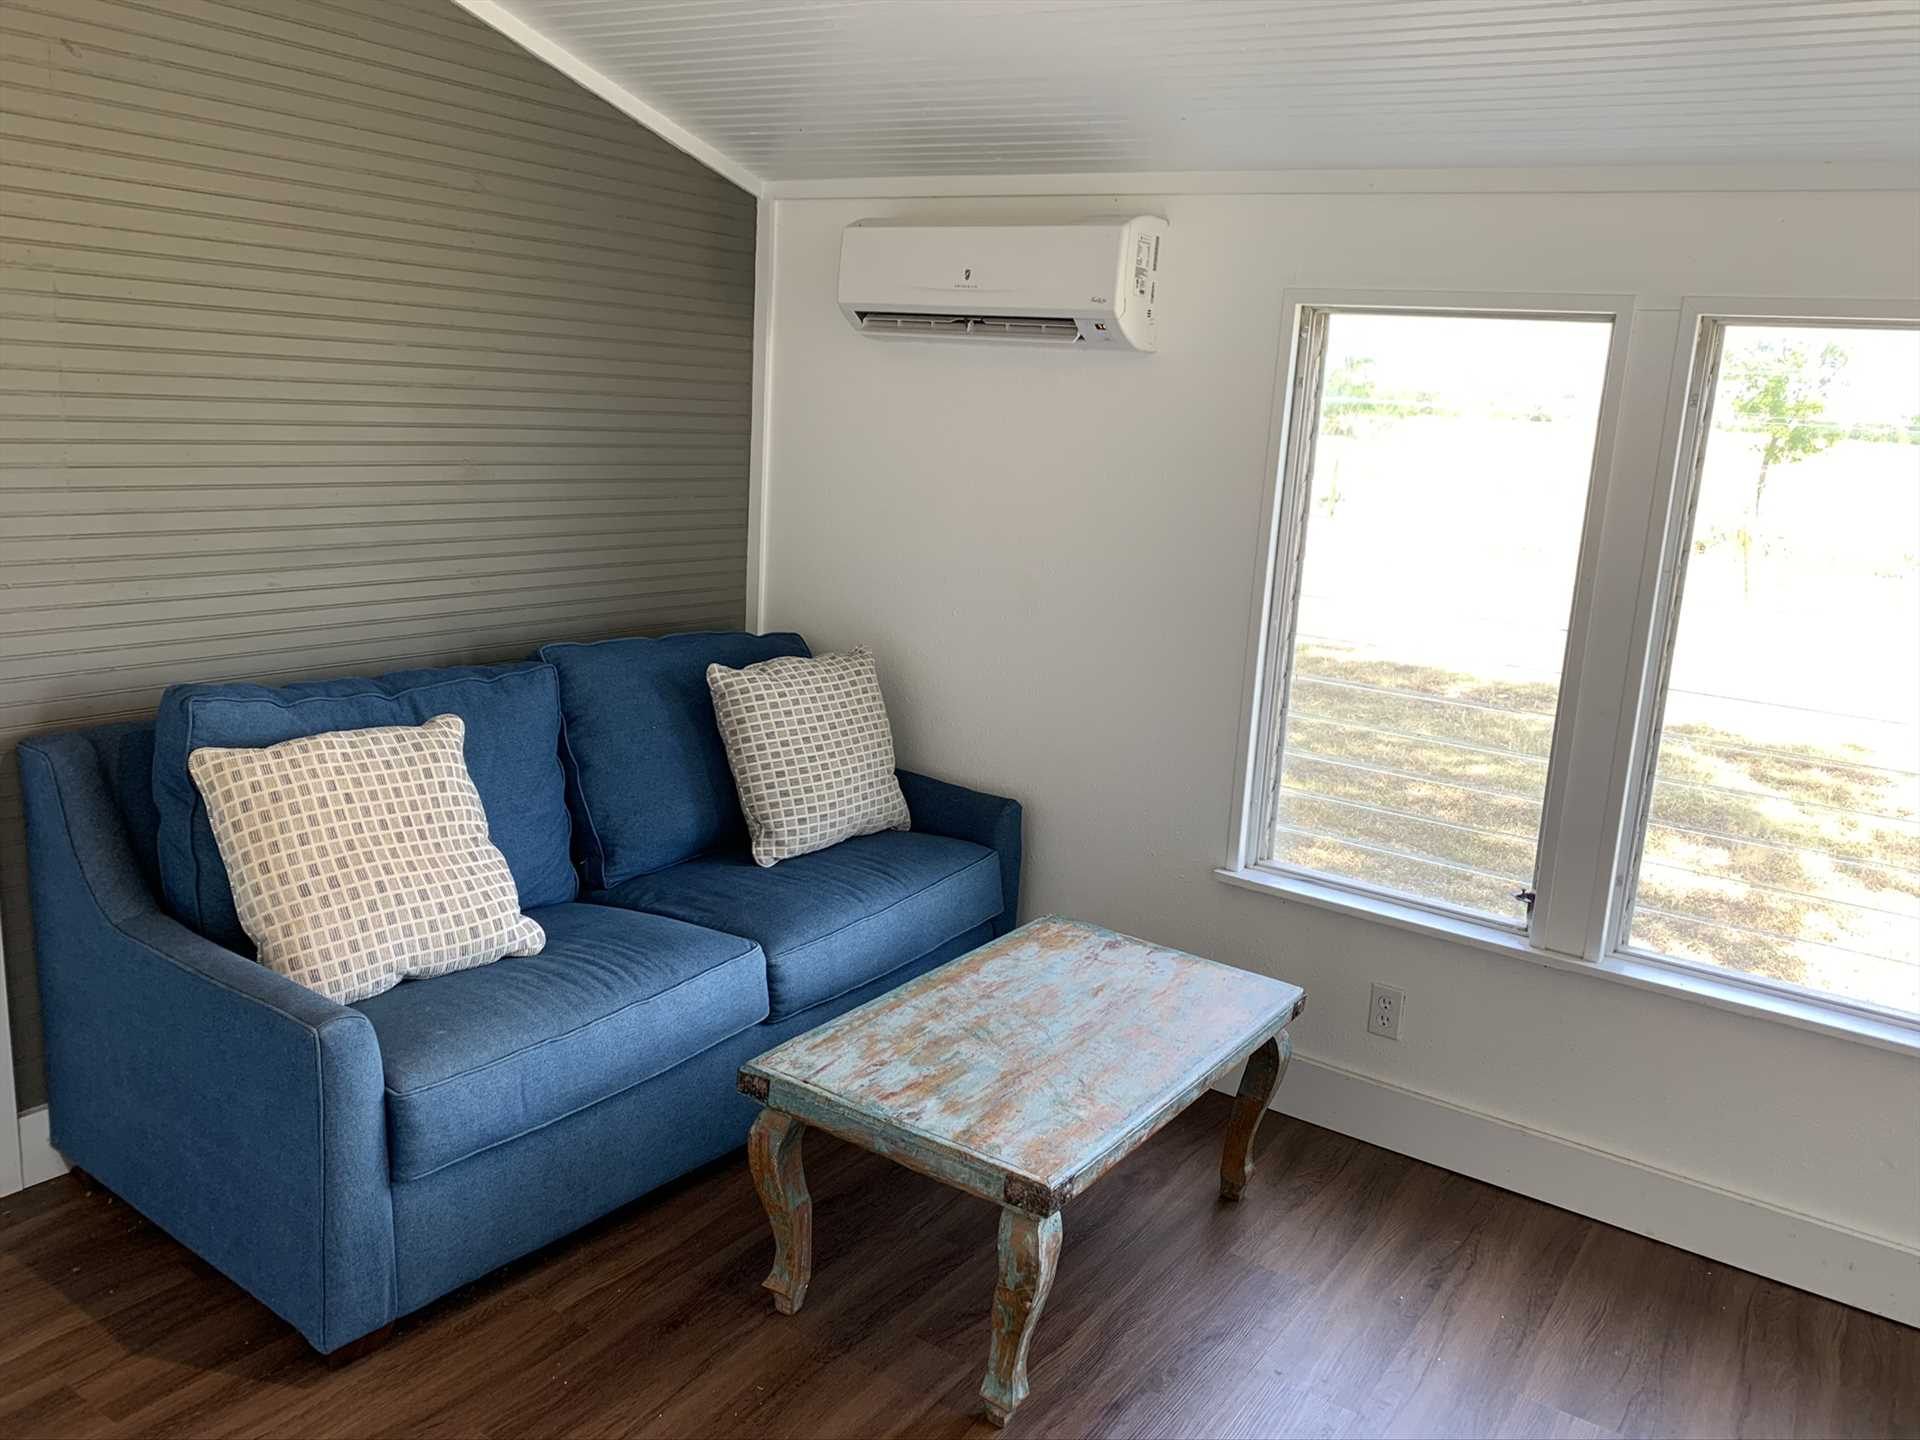 Kids are welcome in the Retreat, and there's a handy sofa sleeper in the sun room for naps!